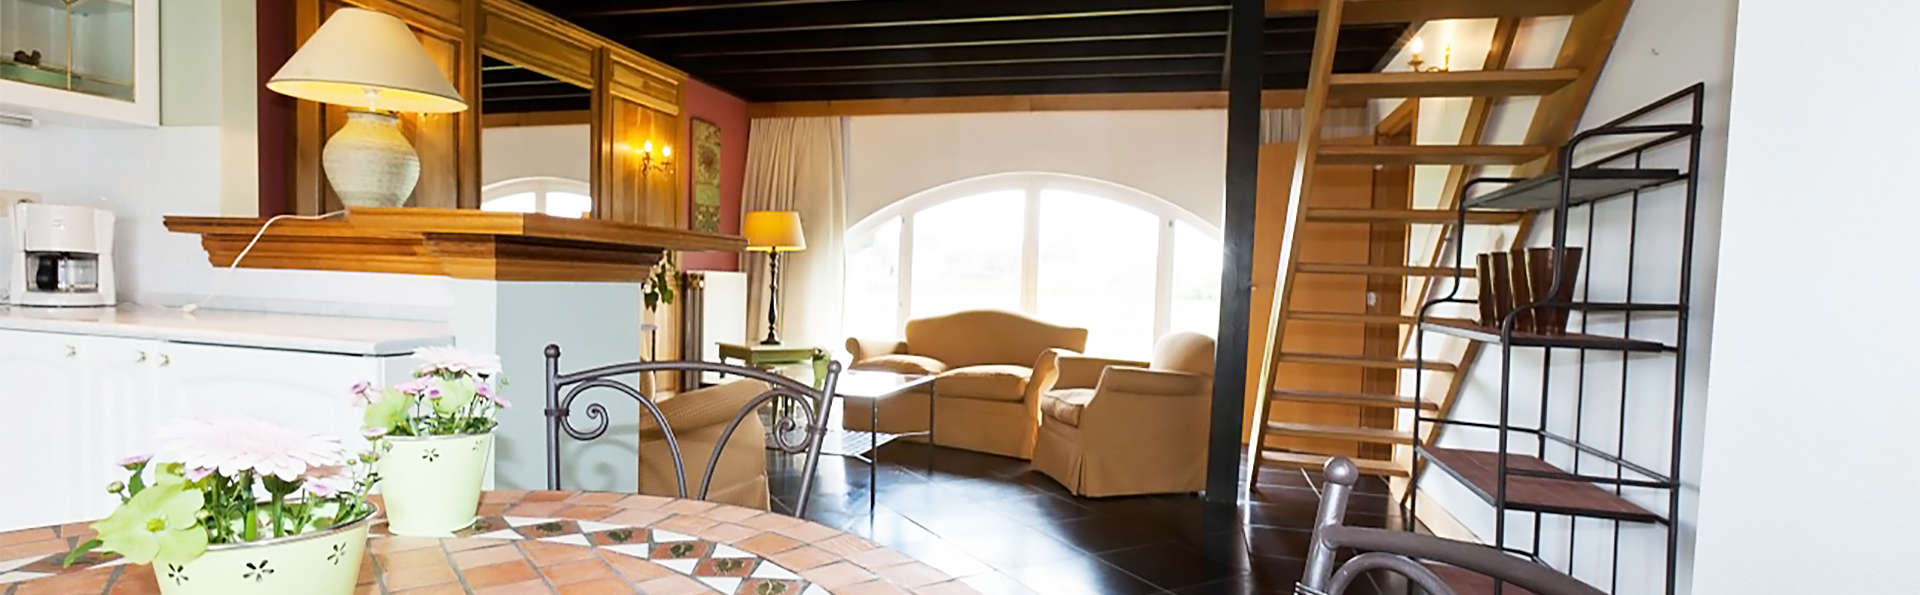 Le Manoir du Capitaine - EDIT_livingroom2.jpg